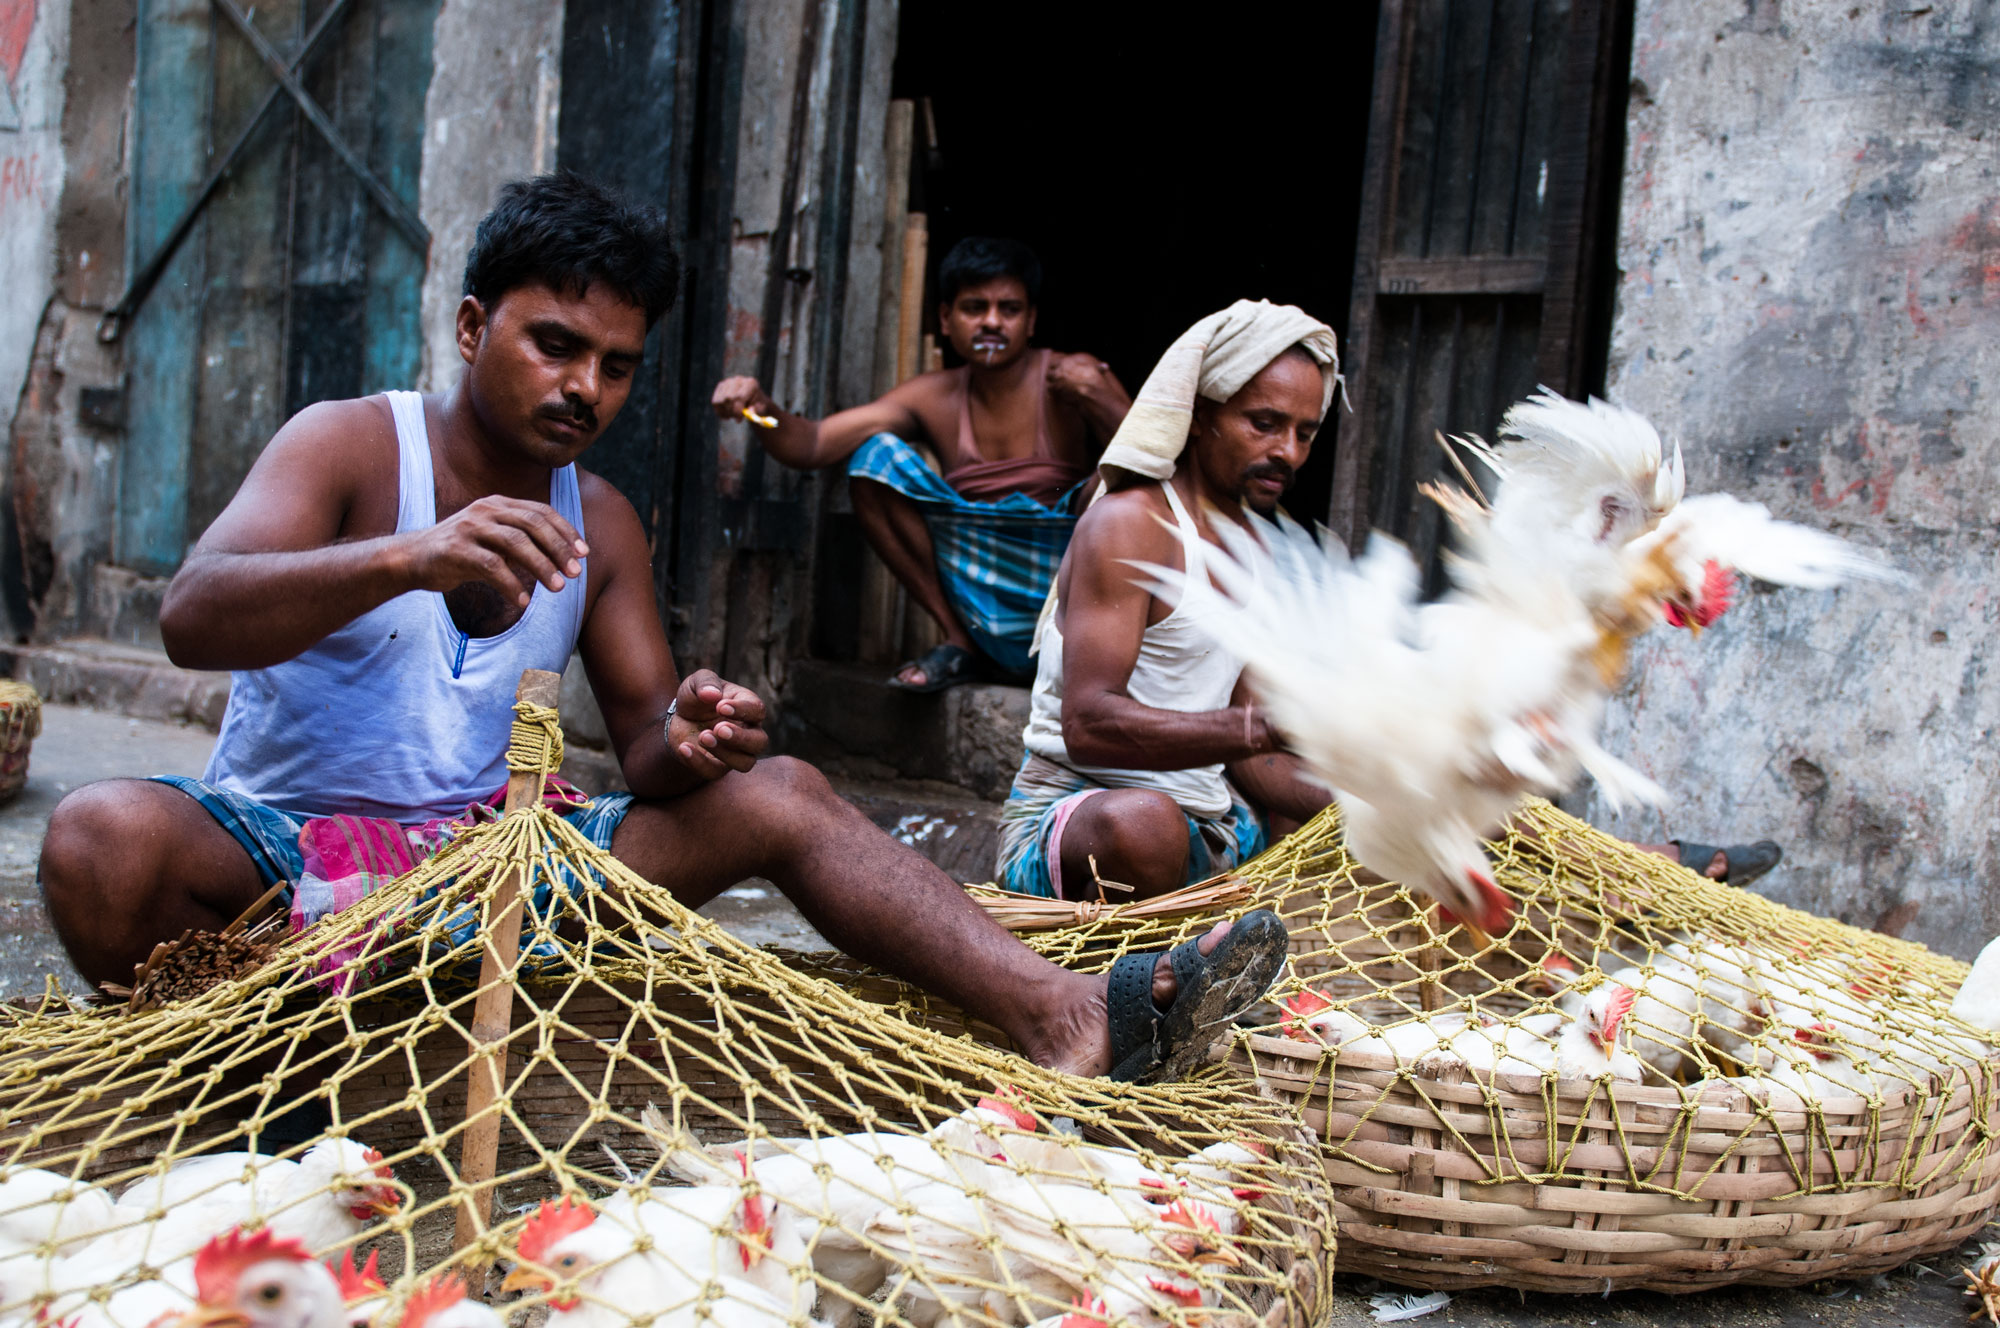 New Market Kolkata India slaughterhouse | laborers sort chickens for weight and size for the local market.